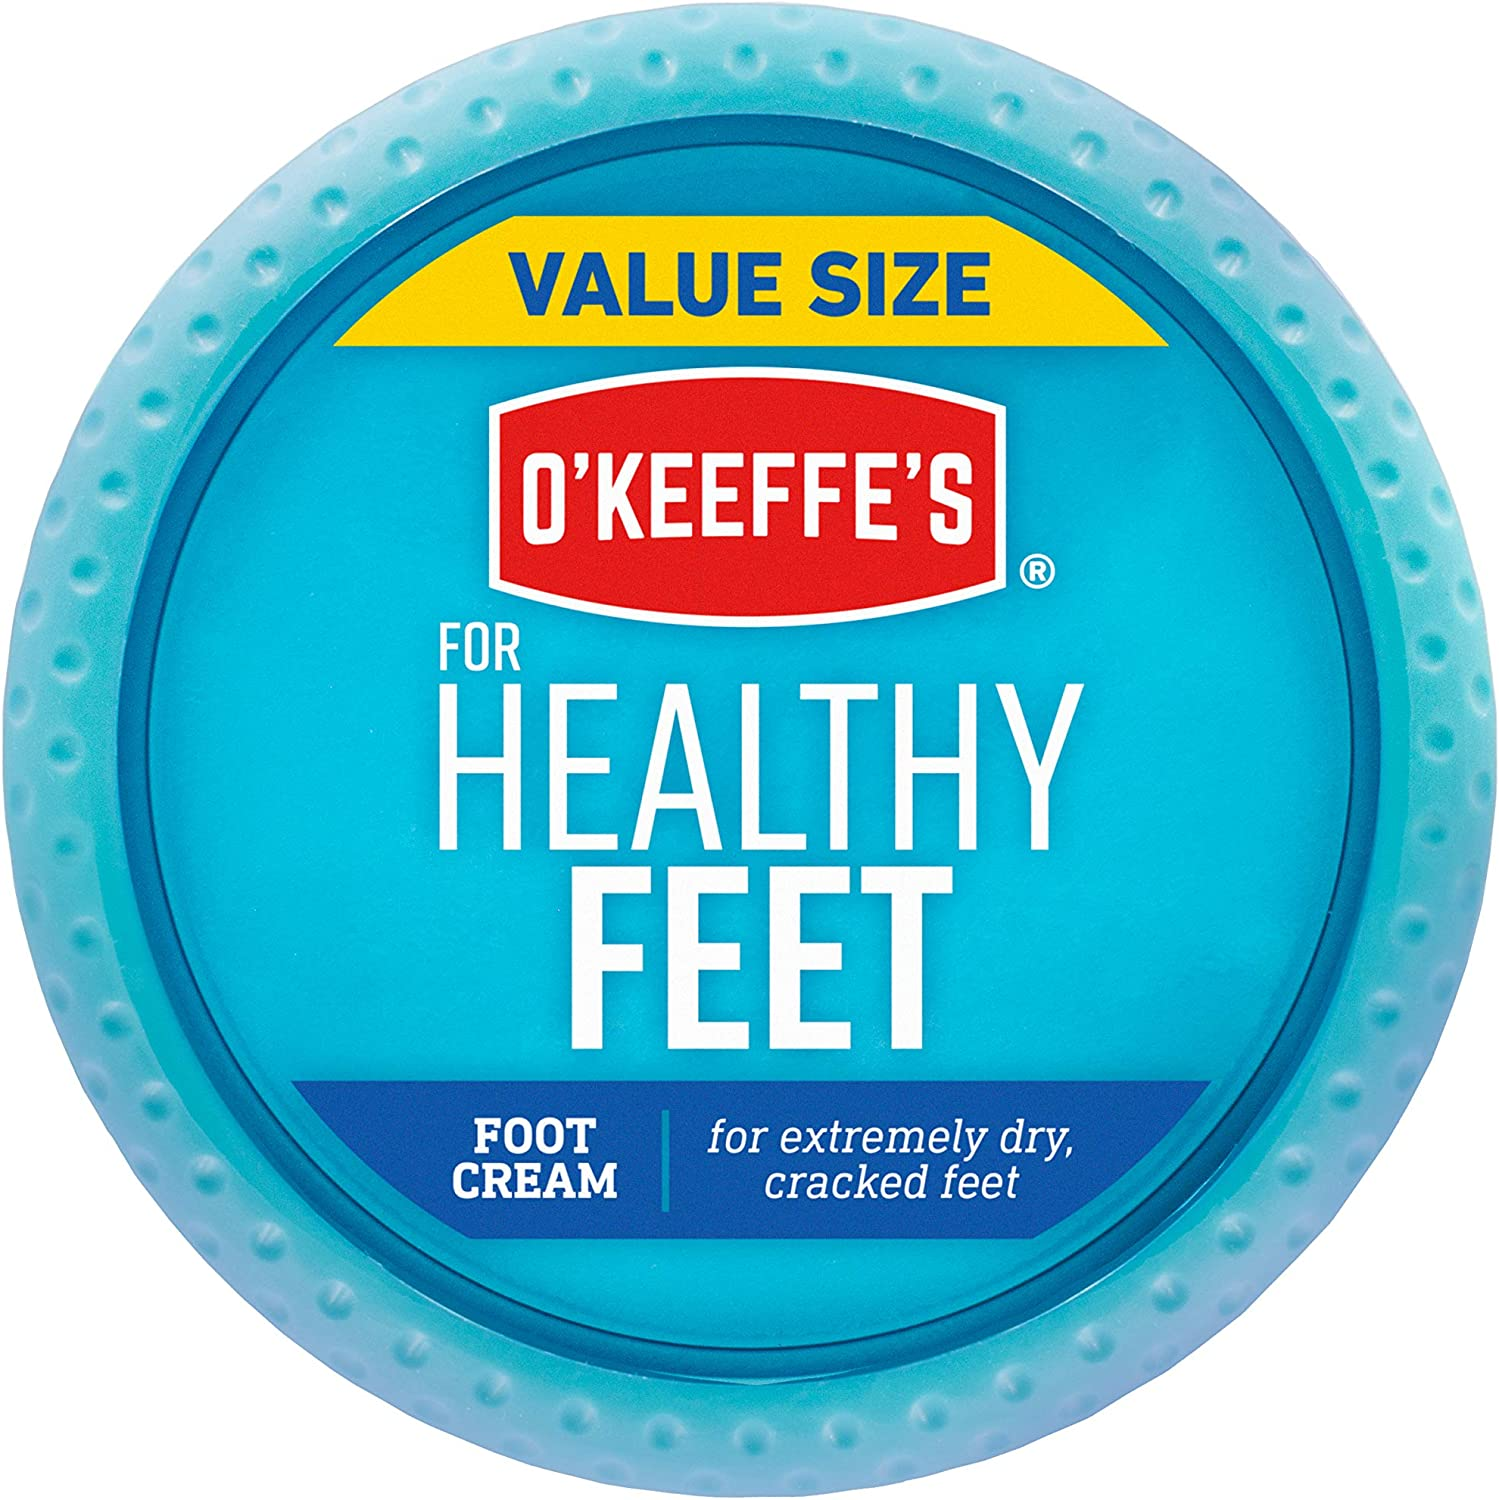 O'Keeffe's Healthy Feet Foot Cream, 6.4oz Jar